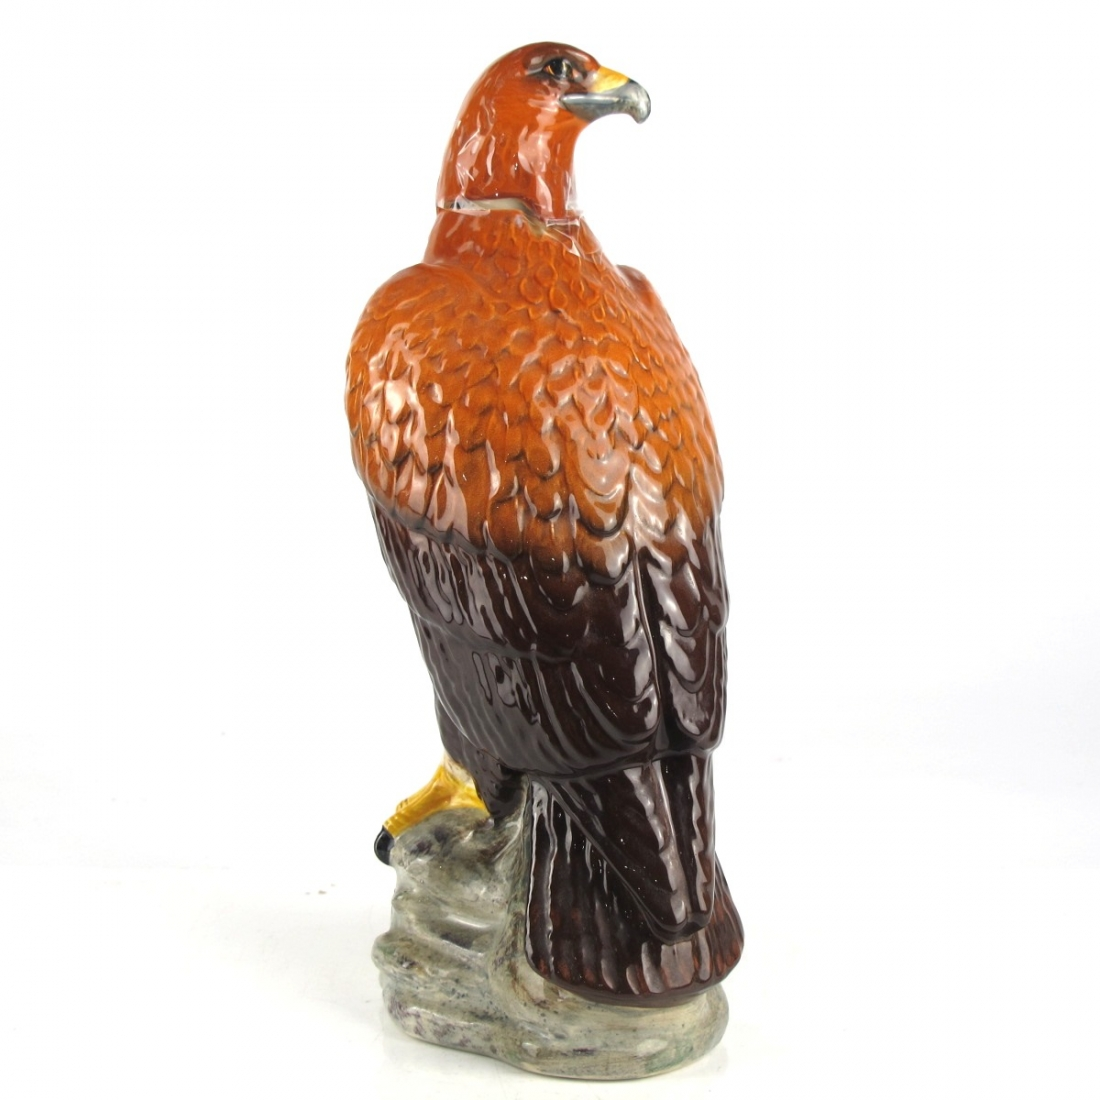 Beneagles Golden Eagle Decanter 1970s